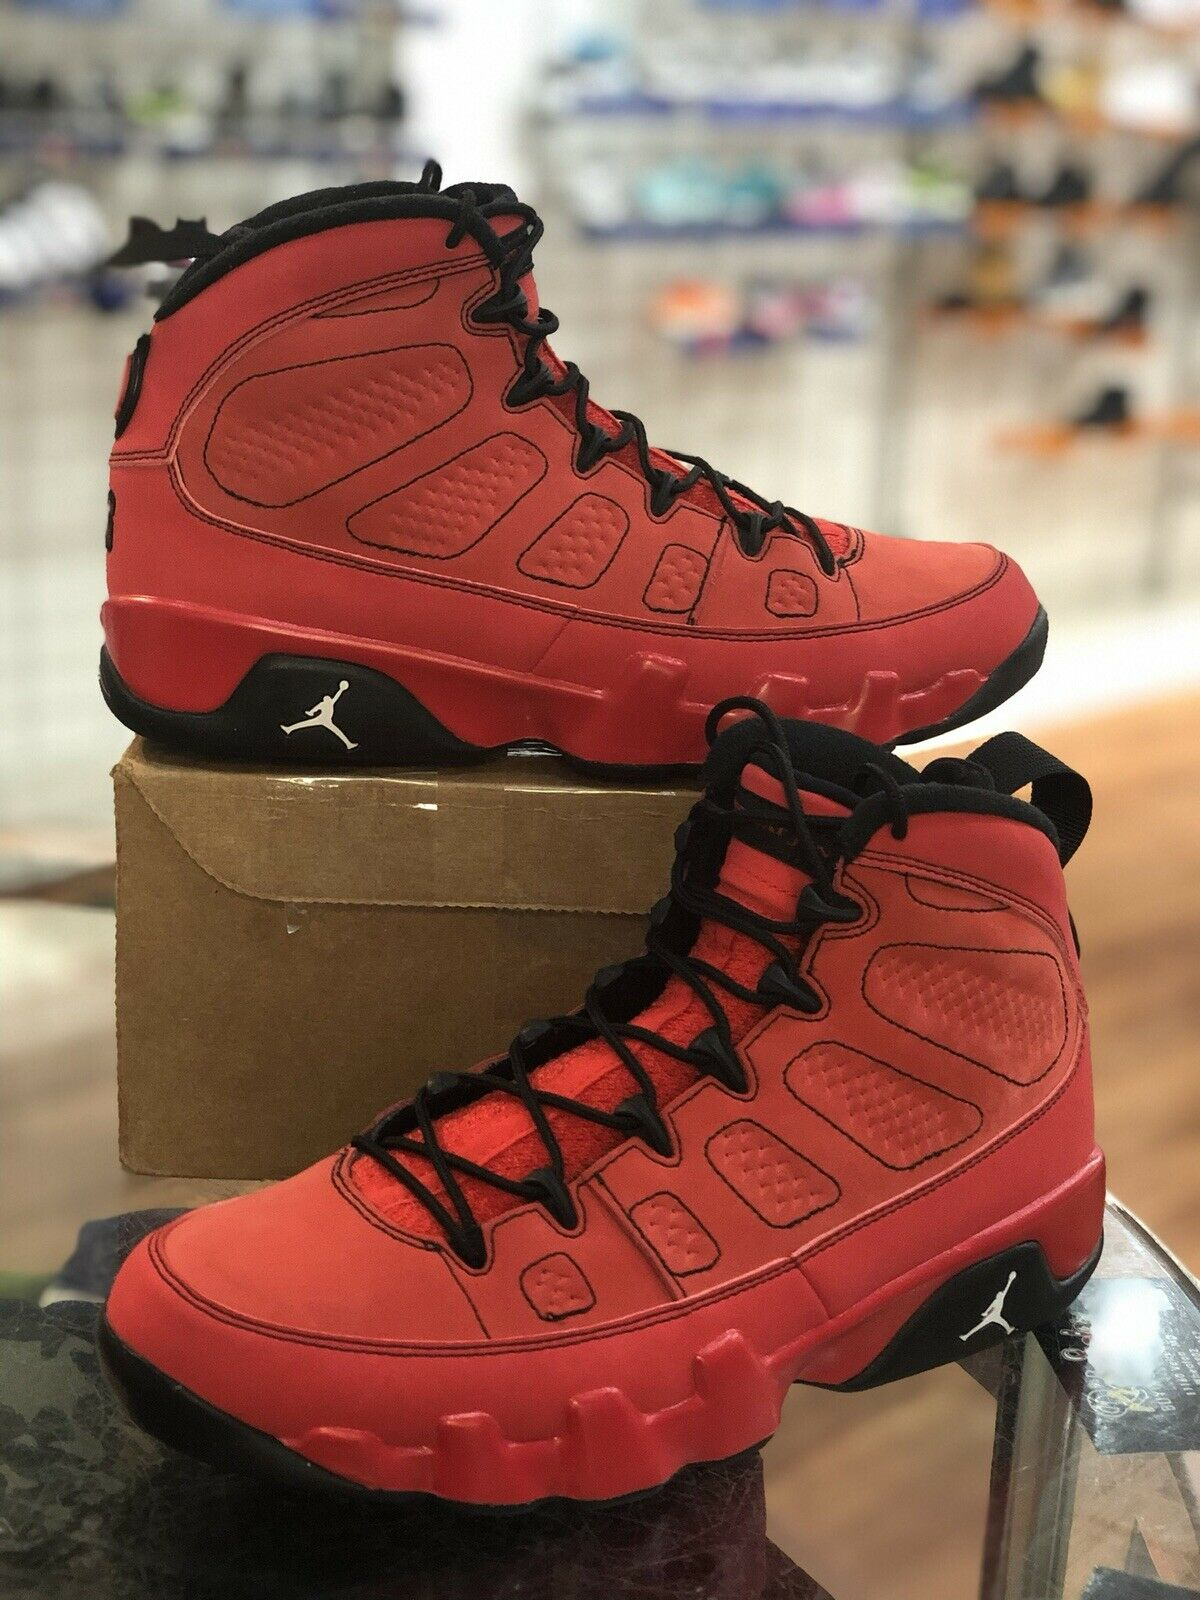 23810676cd4 Brand New Nike Air Jordan 9 Retro RED MOTORBOAT JONES SZ 8.5 302370-645 IX  njnksi2206-Athletic Shoes